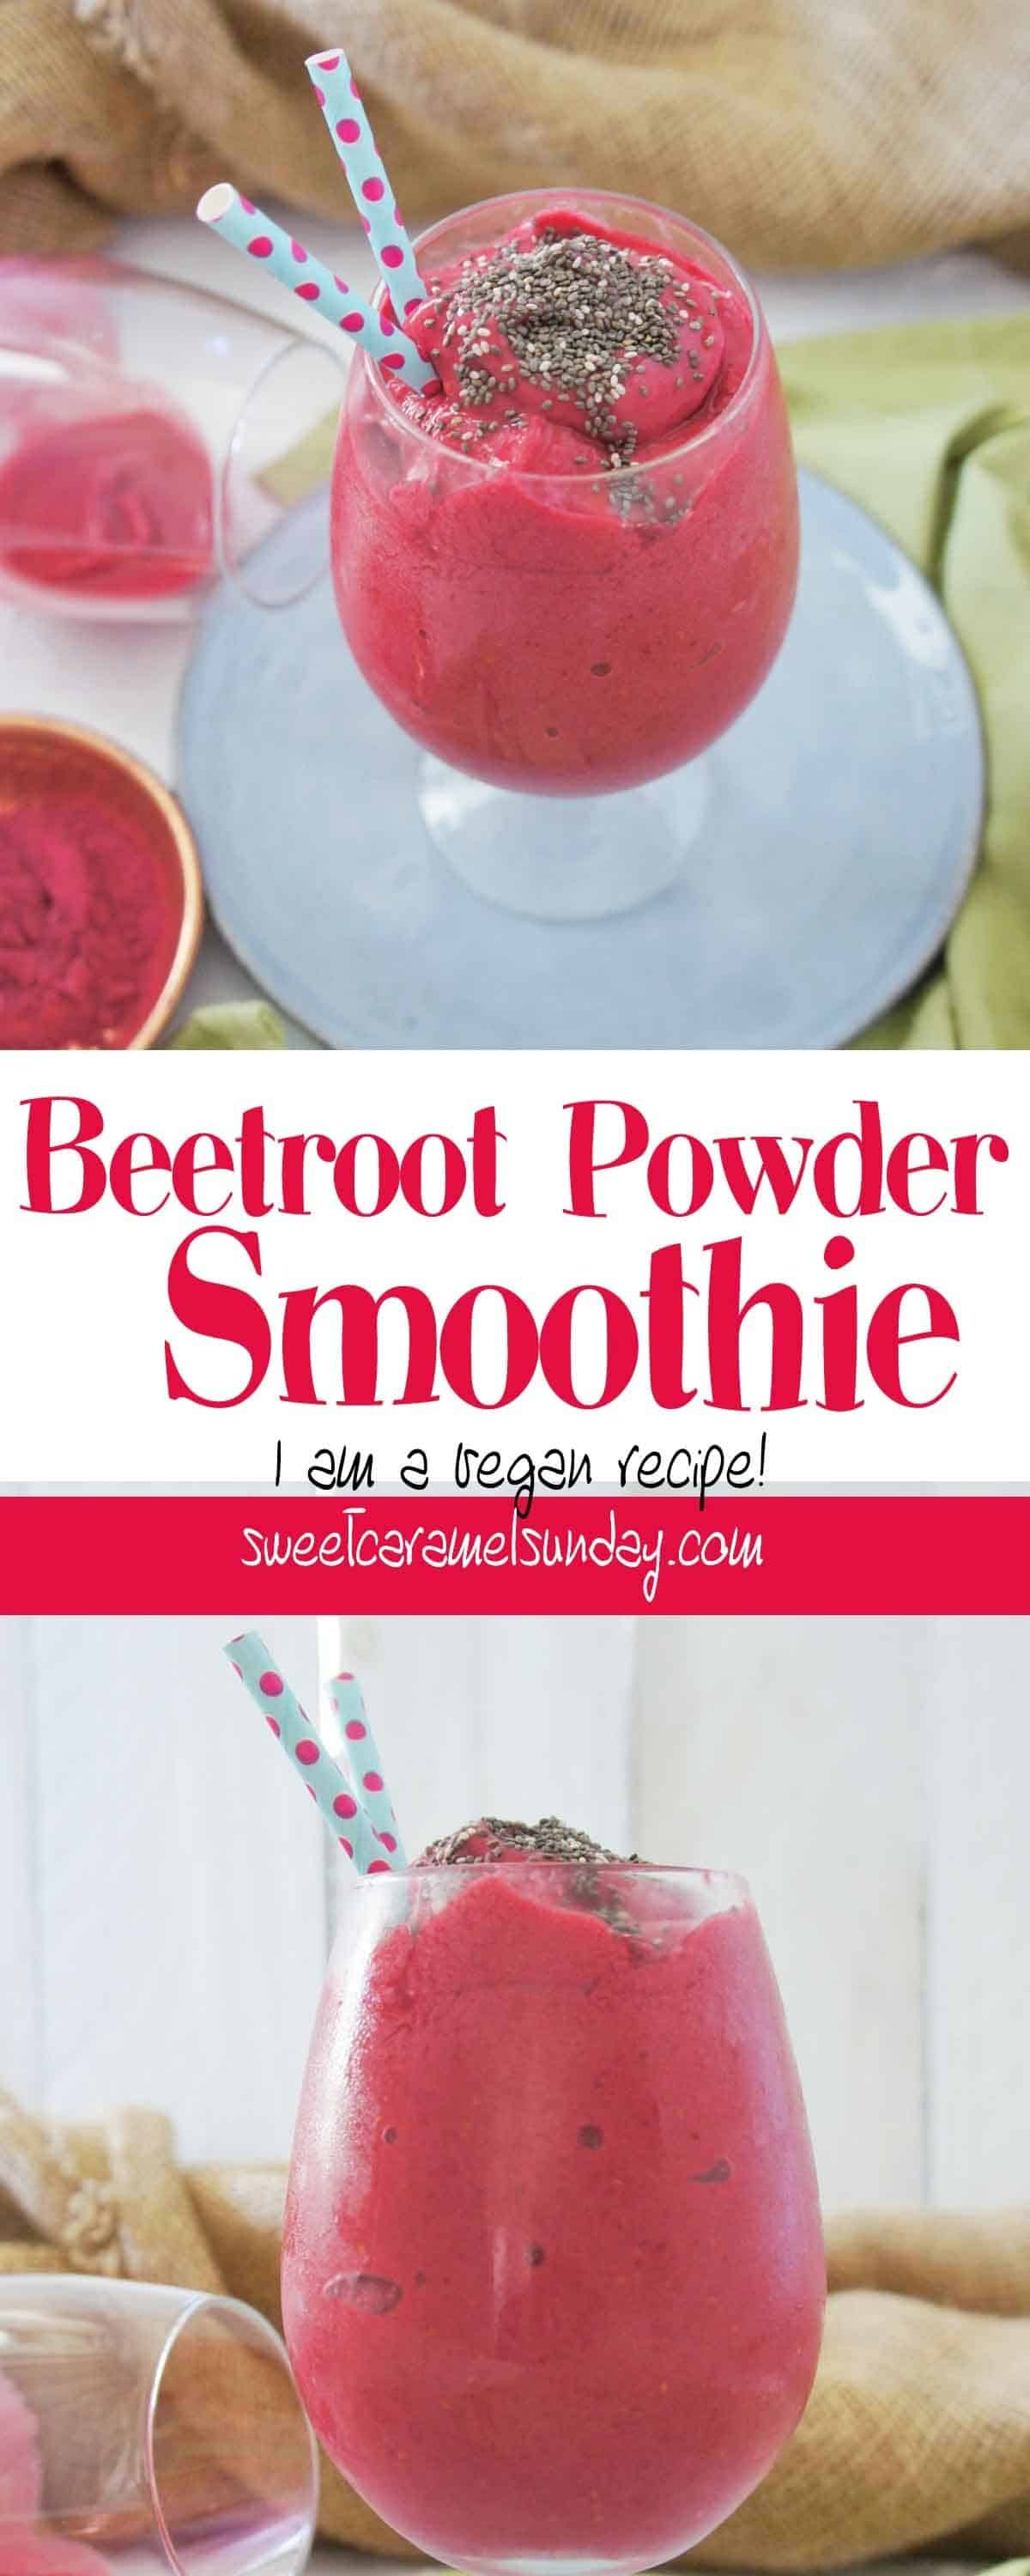 Beetroot Powder Smoothie.jpeg